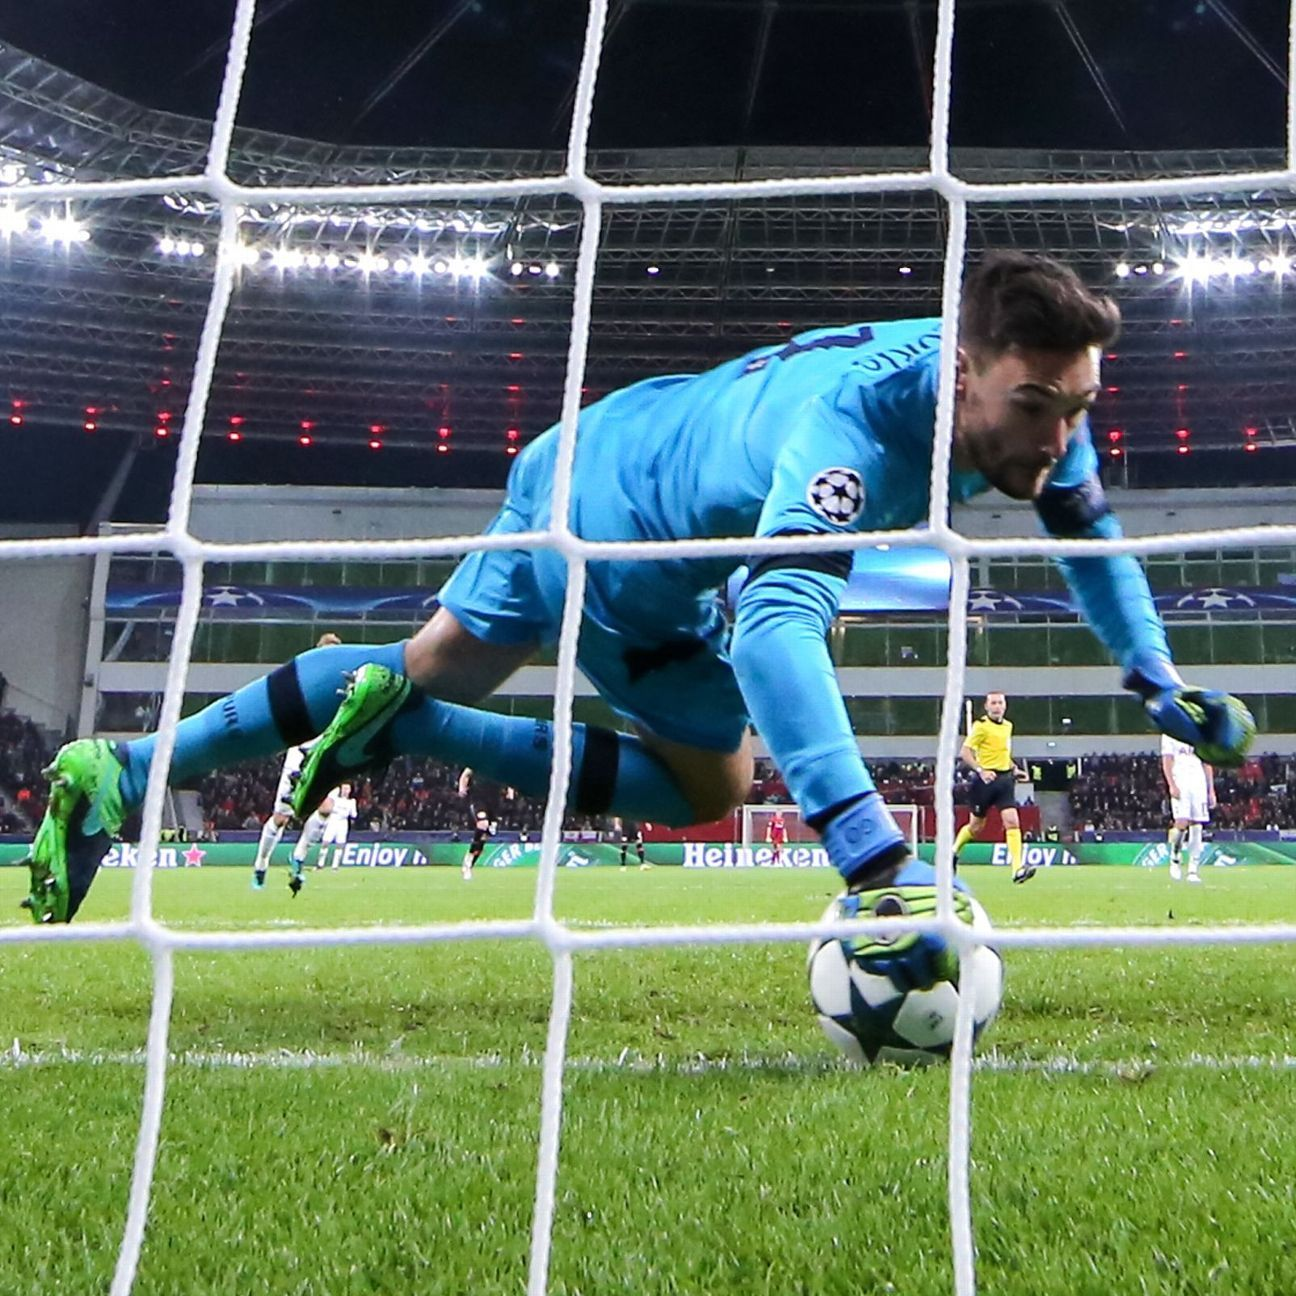 'Brilliant' Hugo Lloris To Thank For Tottenham's Draw